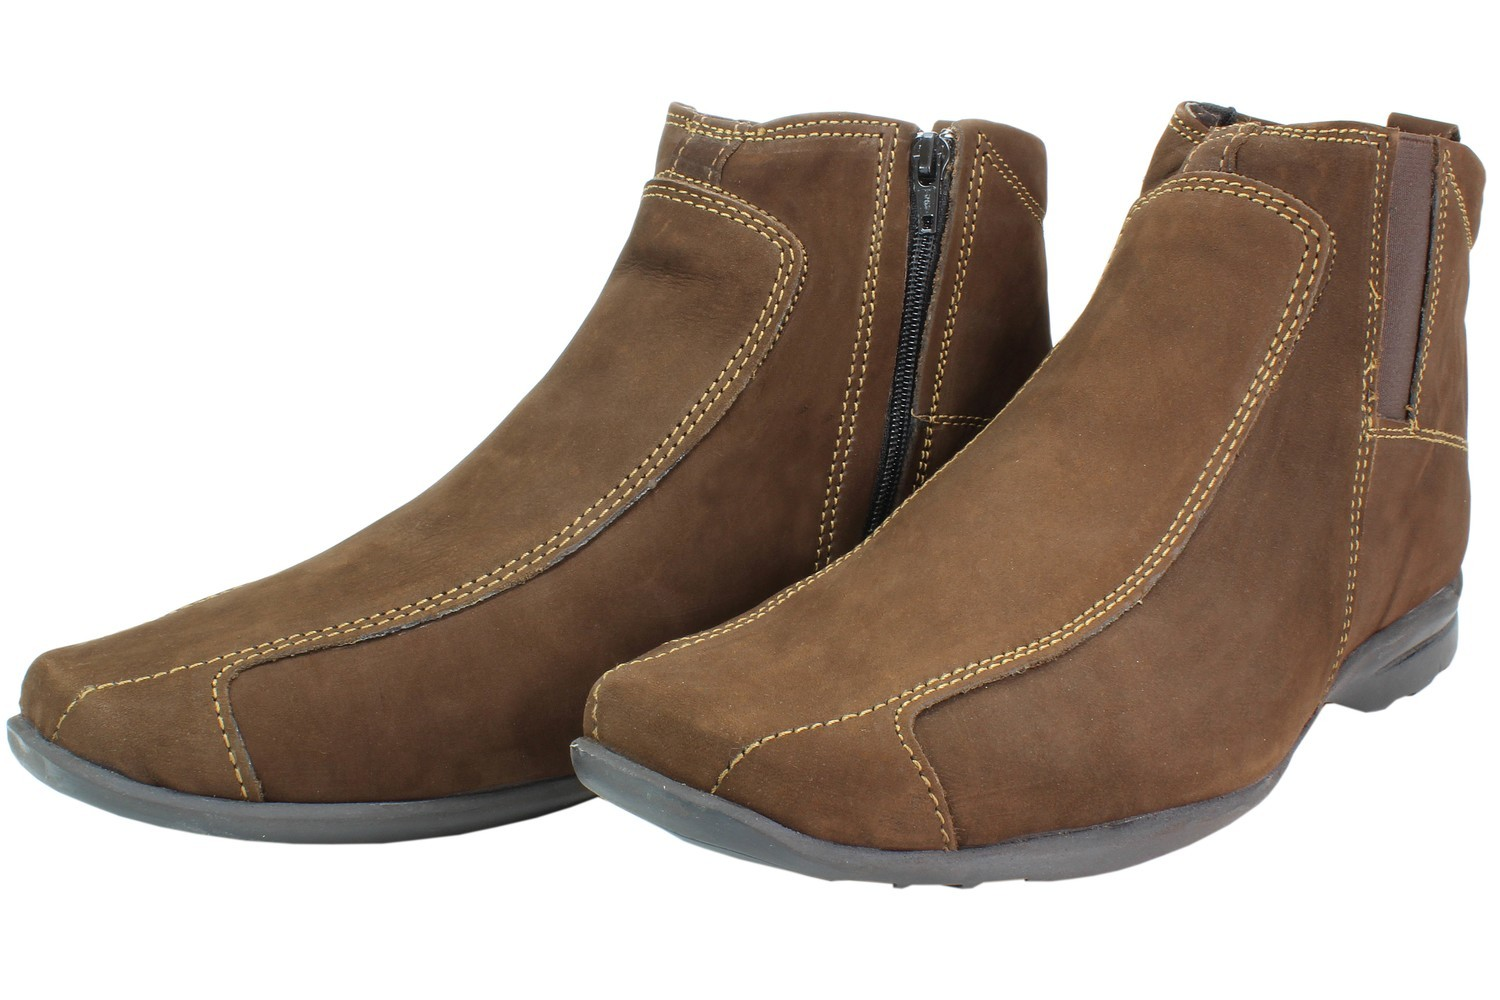 Mens Boots Genuine Nubuck Leather Brown - SUGGESTED RETAIL PRICE $45.00 - WHOLESALE PRICE $9 - Minimum purchase 9 pairs